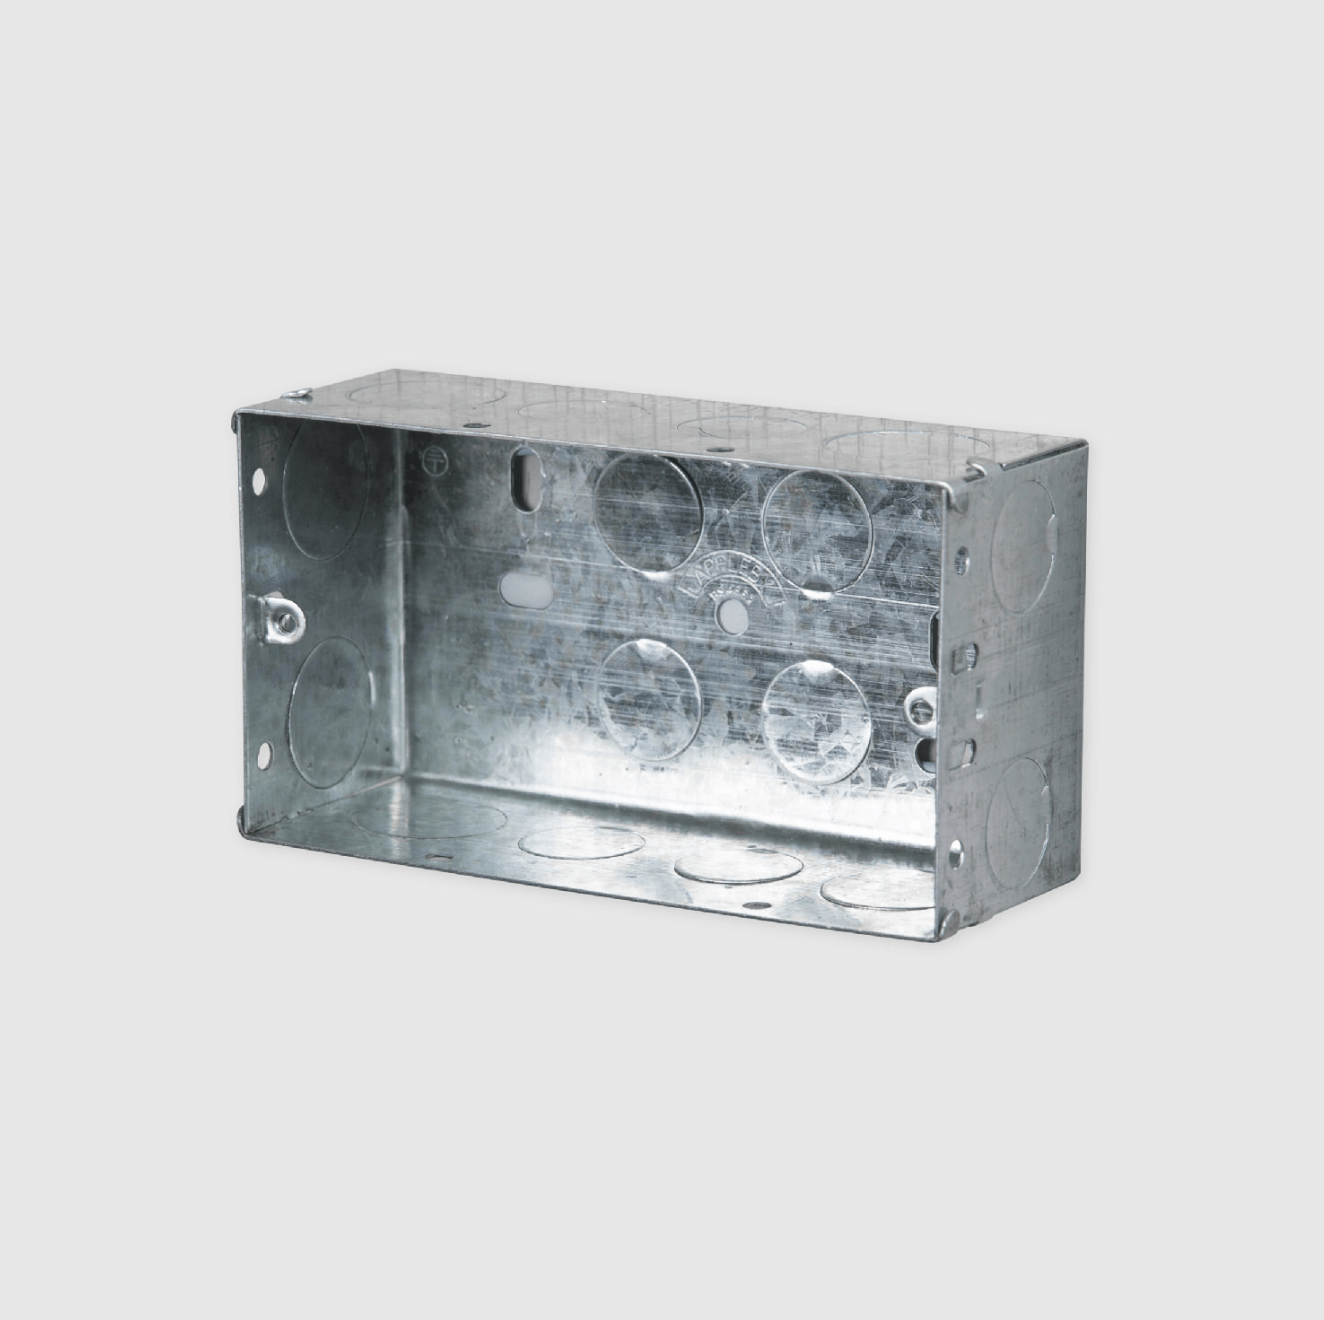 ELECTRICITY 2G METAL BACK BOX 47MM - No.42 Interiors